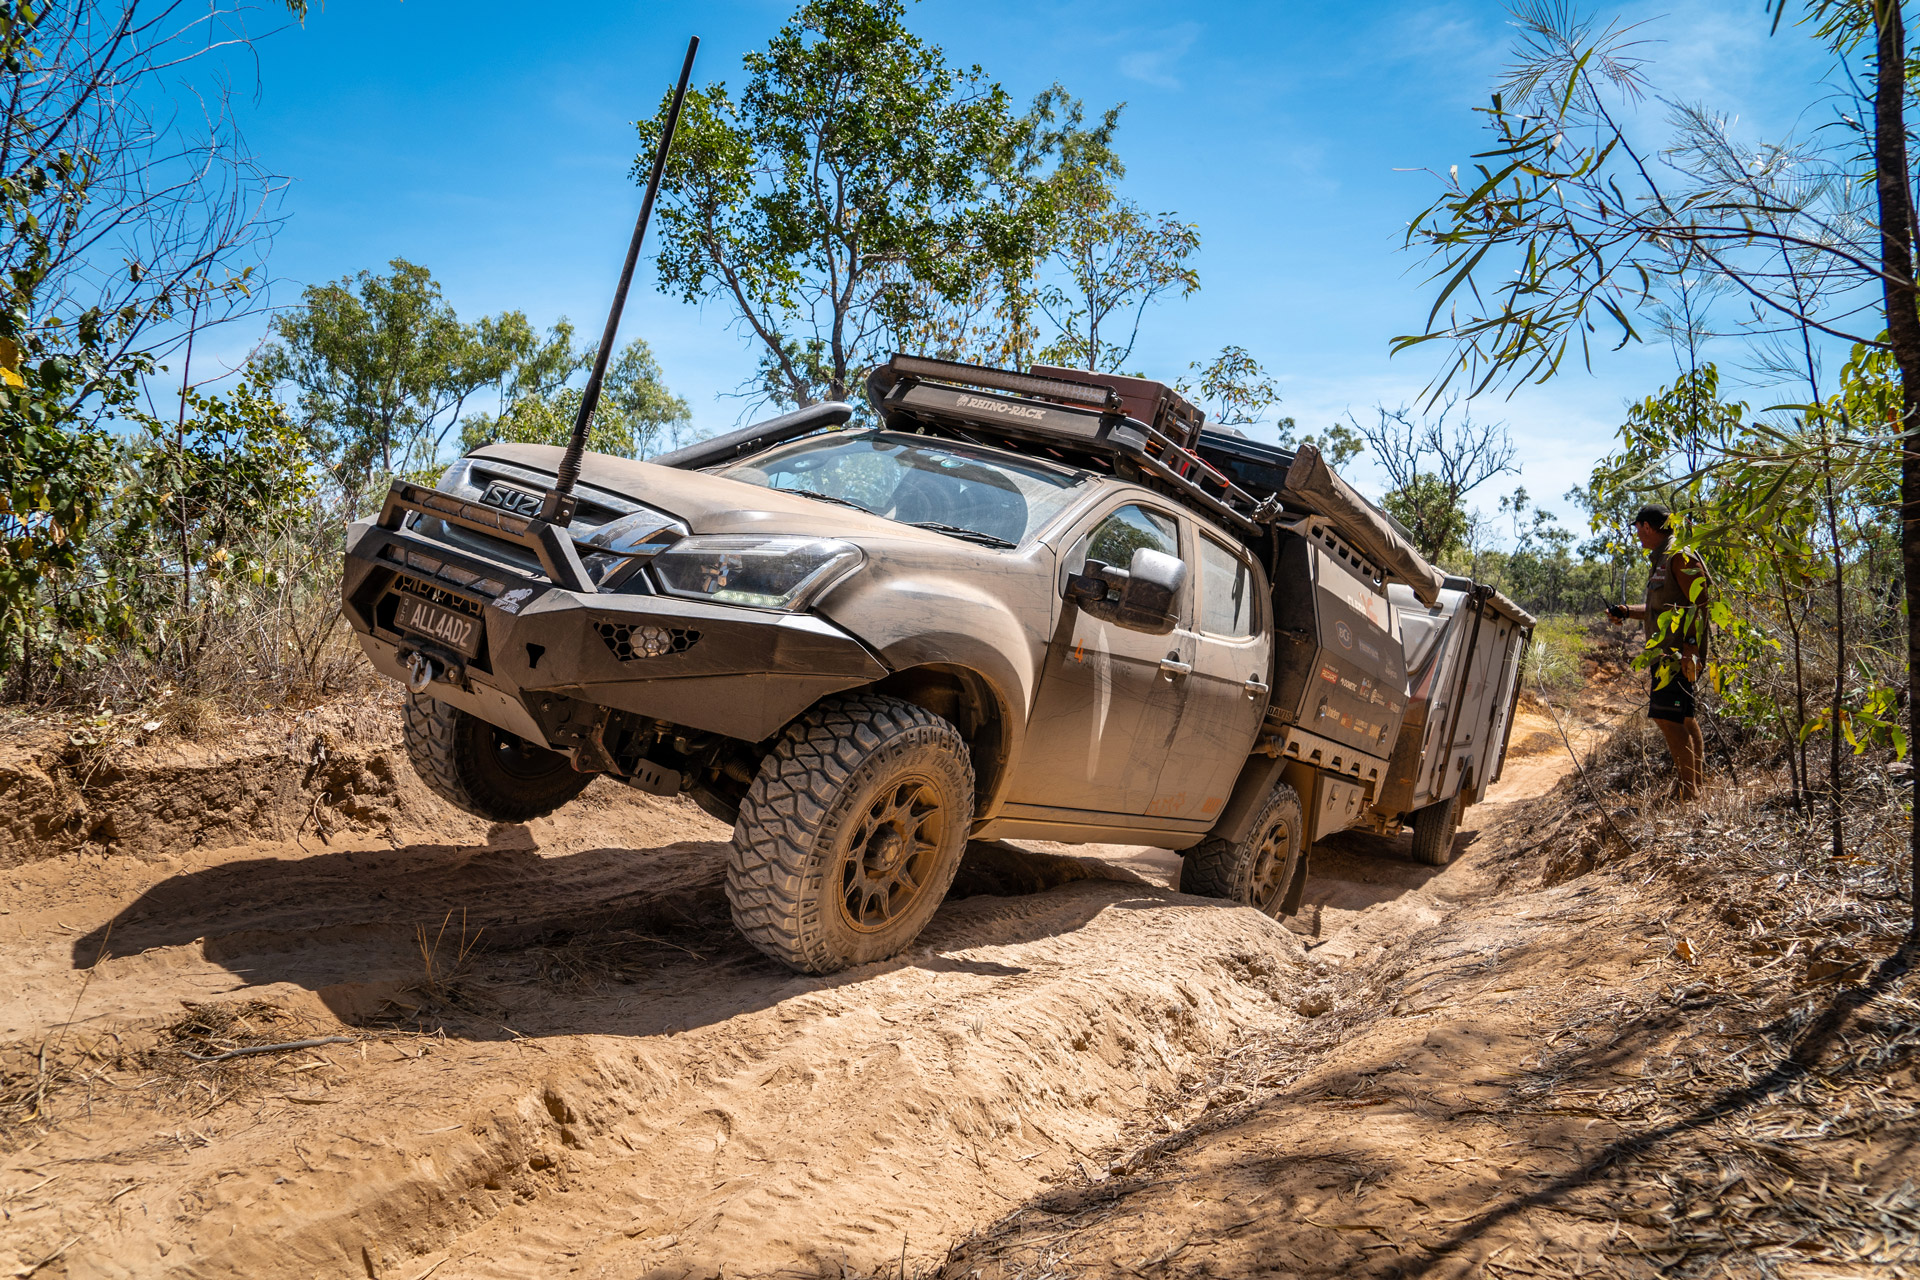 All 4 Adventure Isuzu DMax offroading with Invader wheels